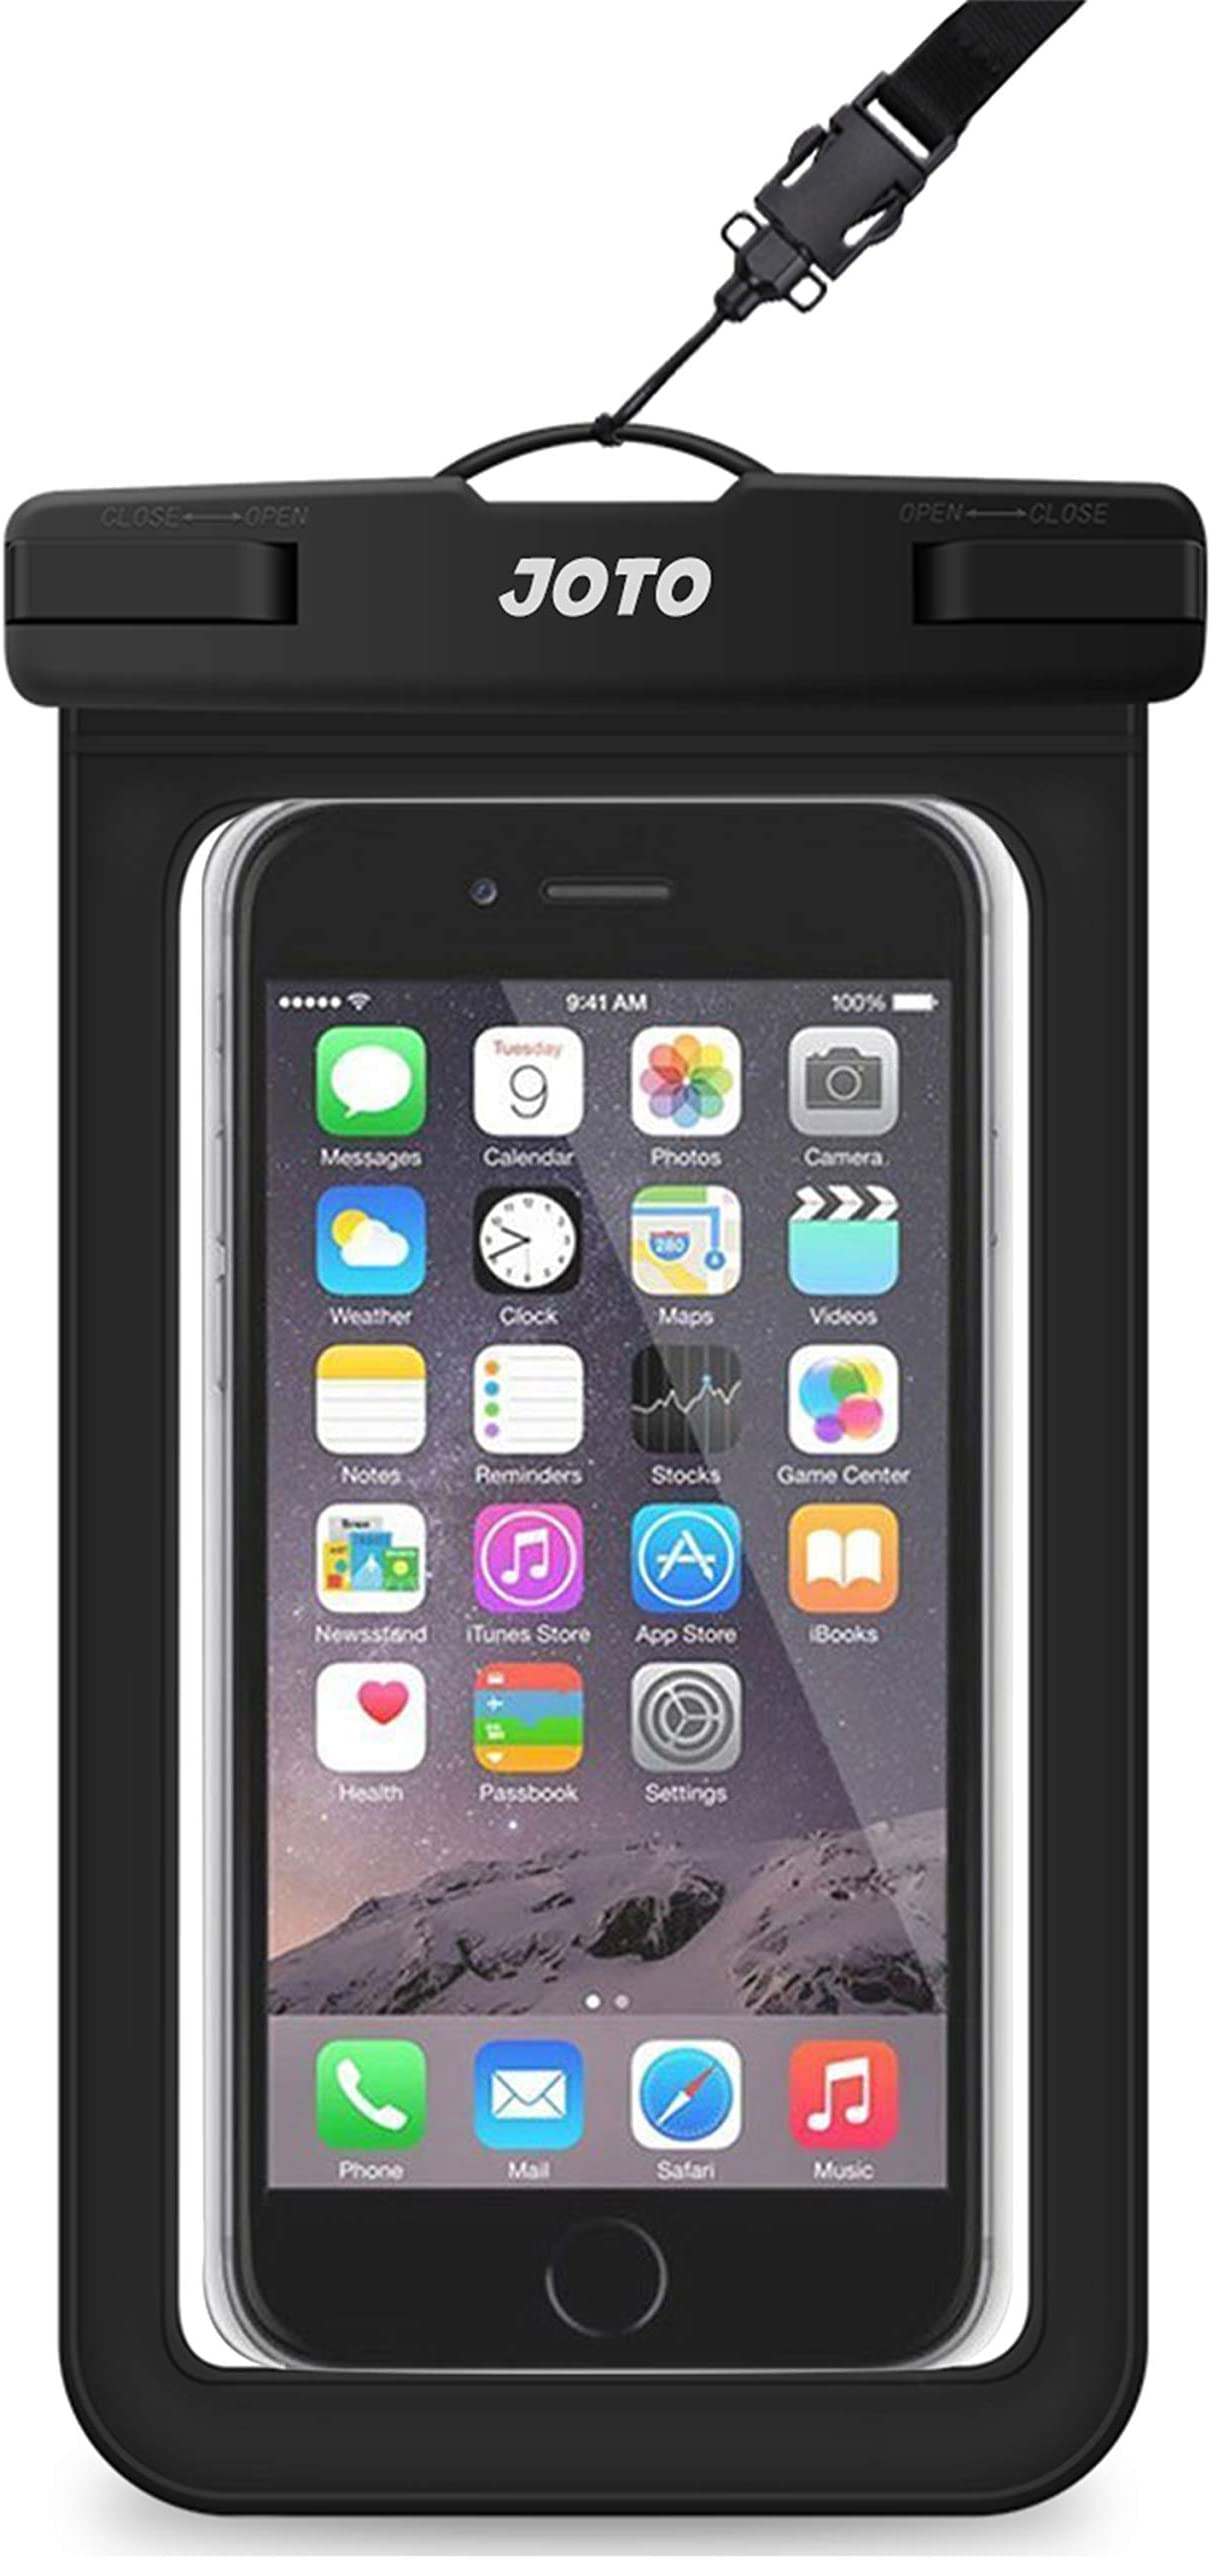 """JOTO Universal Waterproof Pouch Cellphone Dry Bag Case for iPhone 12 Pro Max 11 Pro Max Xs Max XR X 8 7 6S Plus SE, Galaxy S20 Ultra S20+ S10 Plus S10e /Note 10+ 9, Pixel 4 XL up to 6.9"""" -Black"""